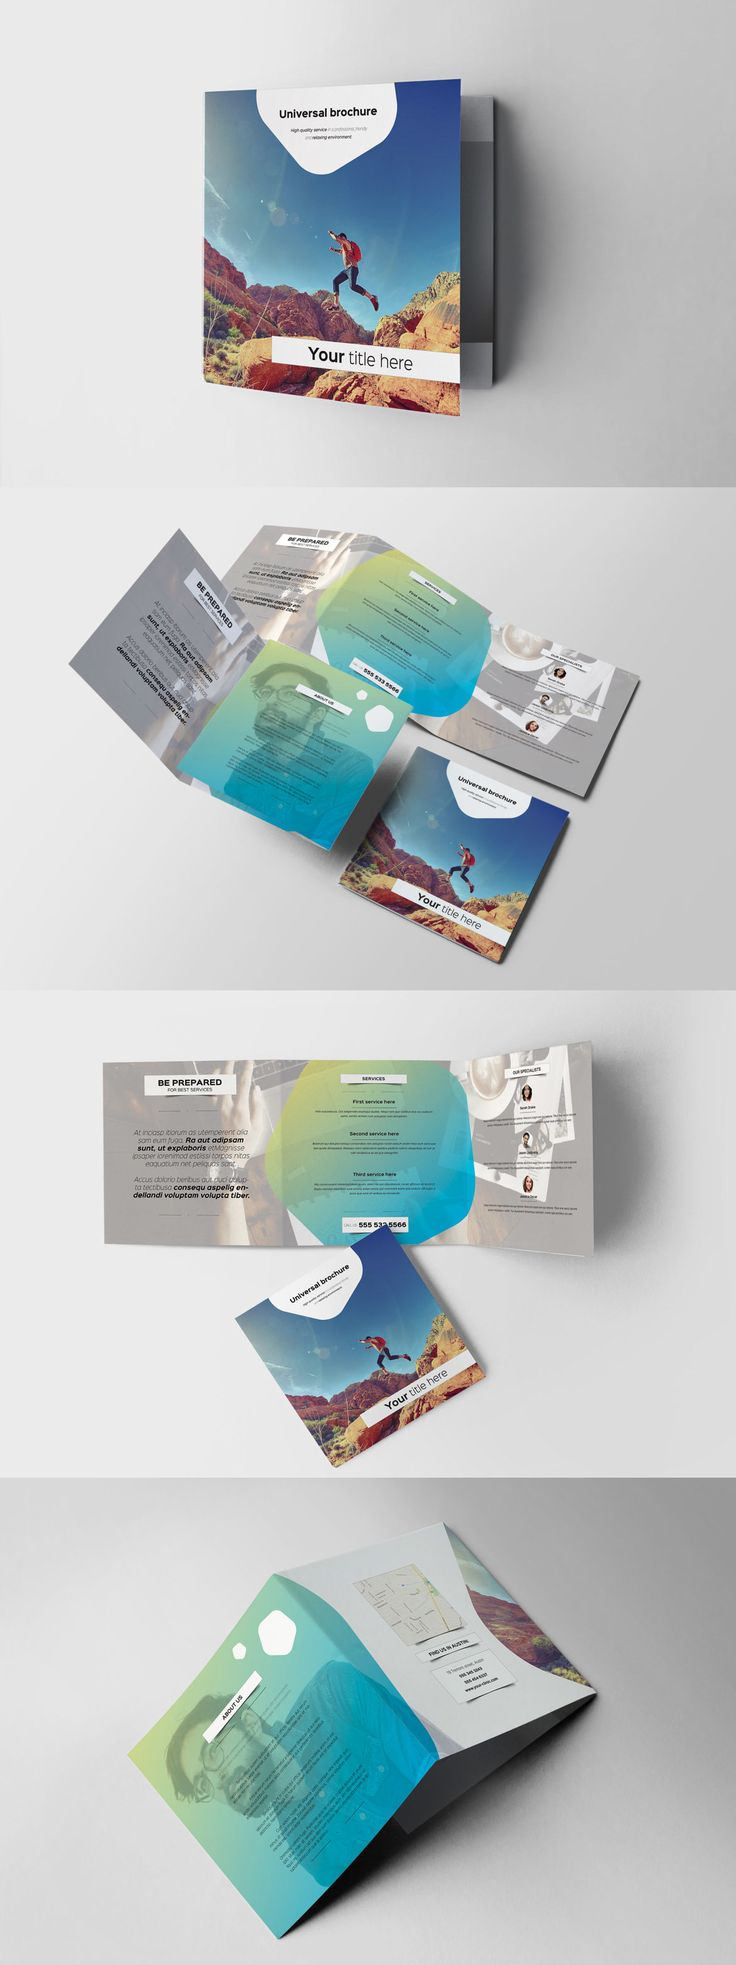 indesign brochure templates - Paso.evolist.co